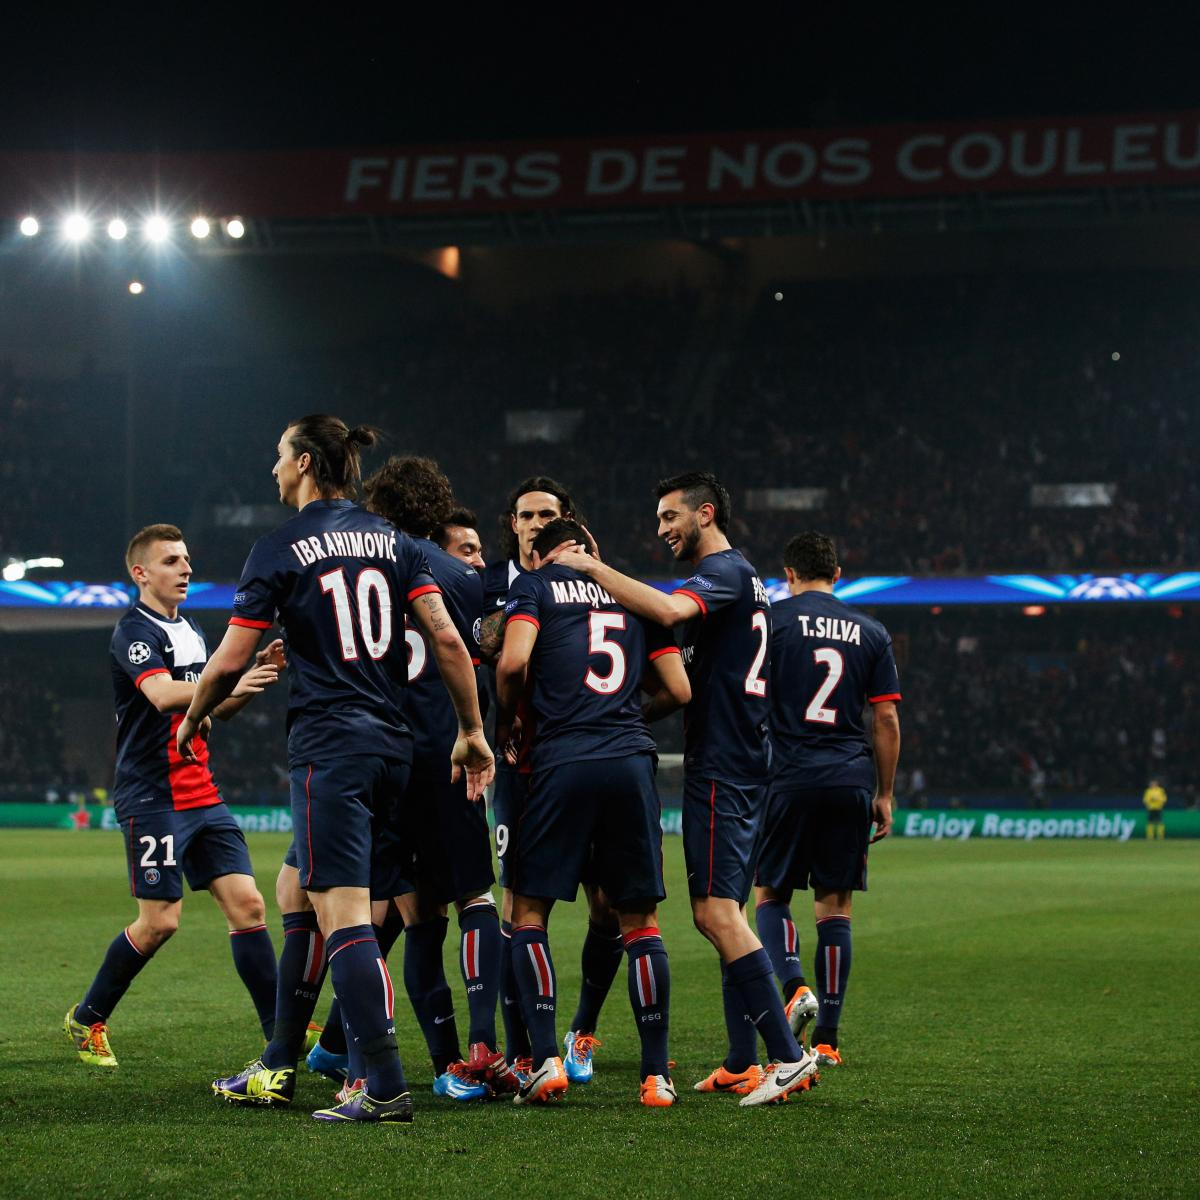 Photos Chelsea Vs Paris Saint Germain: How Paris Saint-Germain Will Line Up Against Chelsea